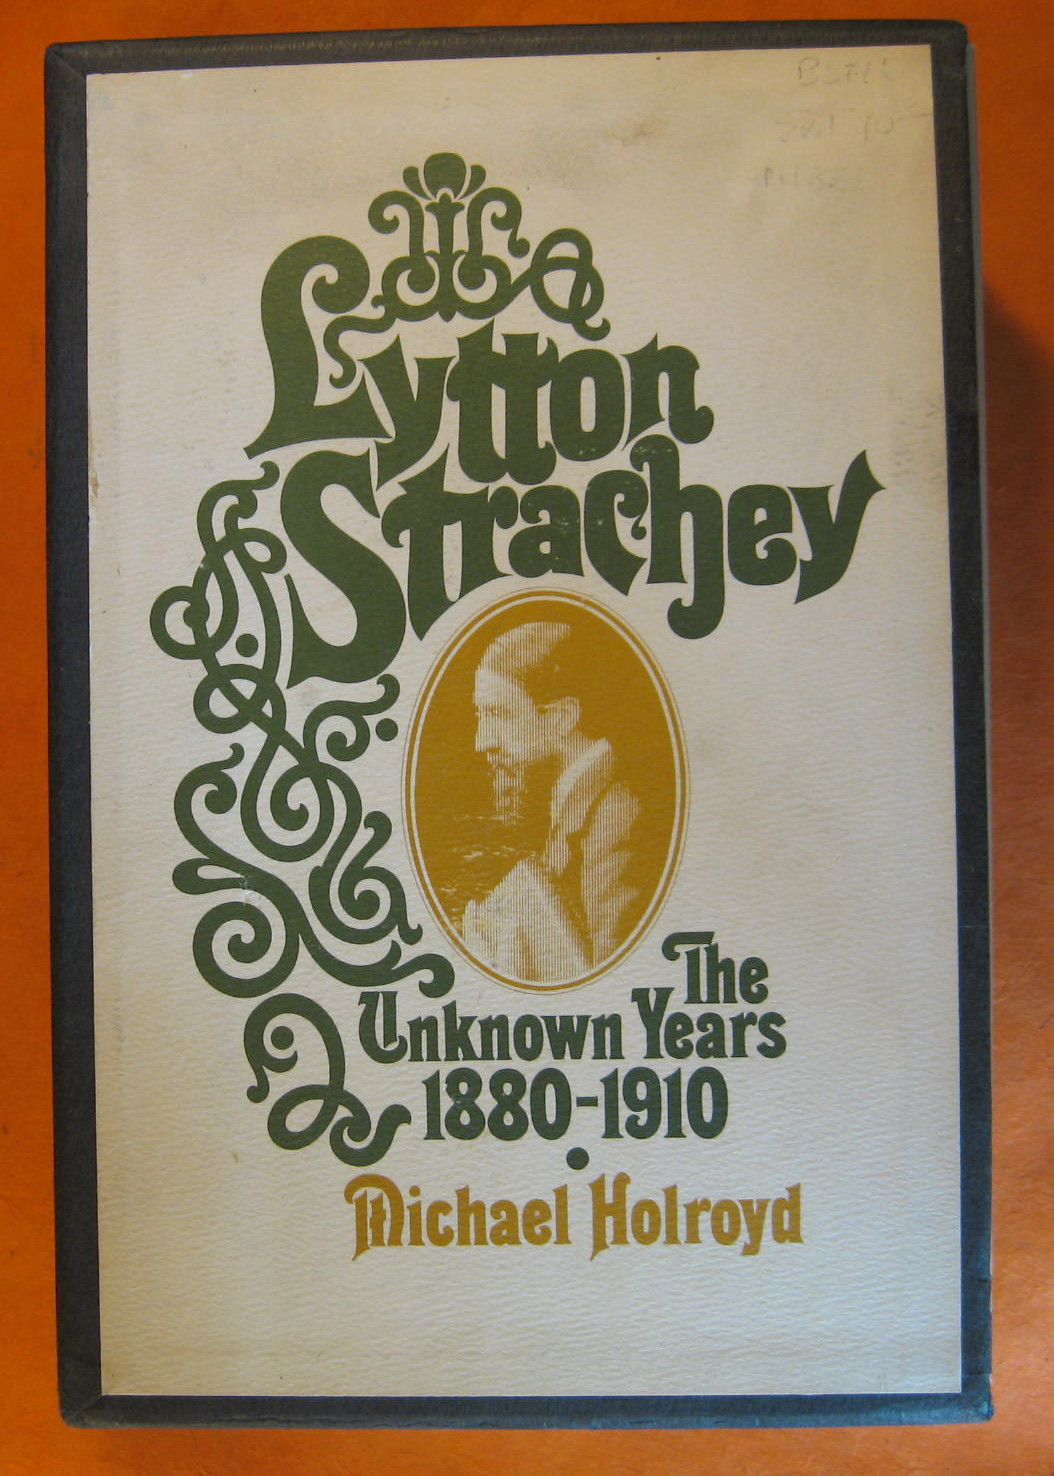 Lytton Strachey The Unknown Years 1880-1910 / Lytton Strachey:  The Years of Achievement 1910-1932 (Two Volumes), Holroyd, Michael